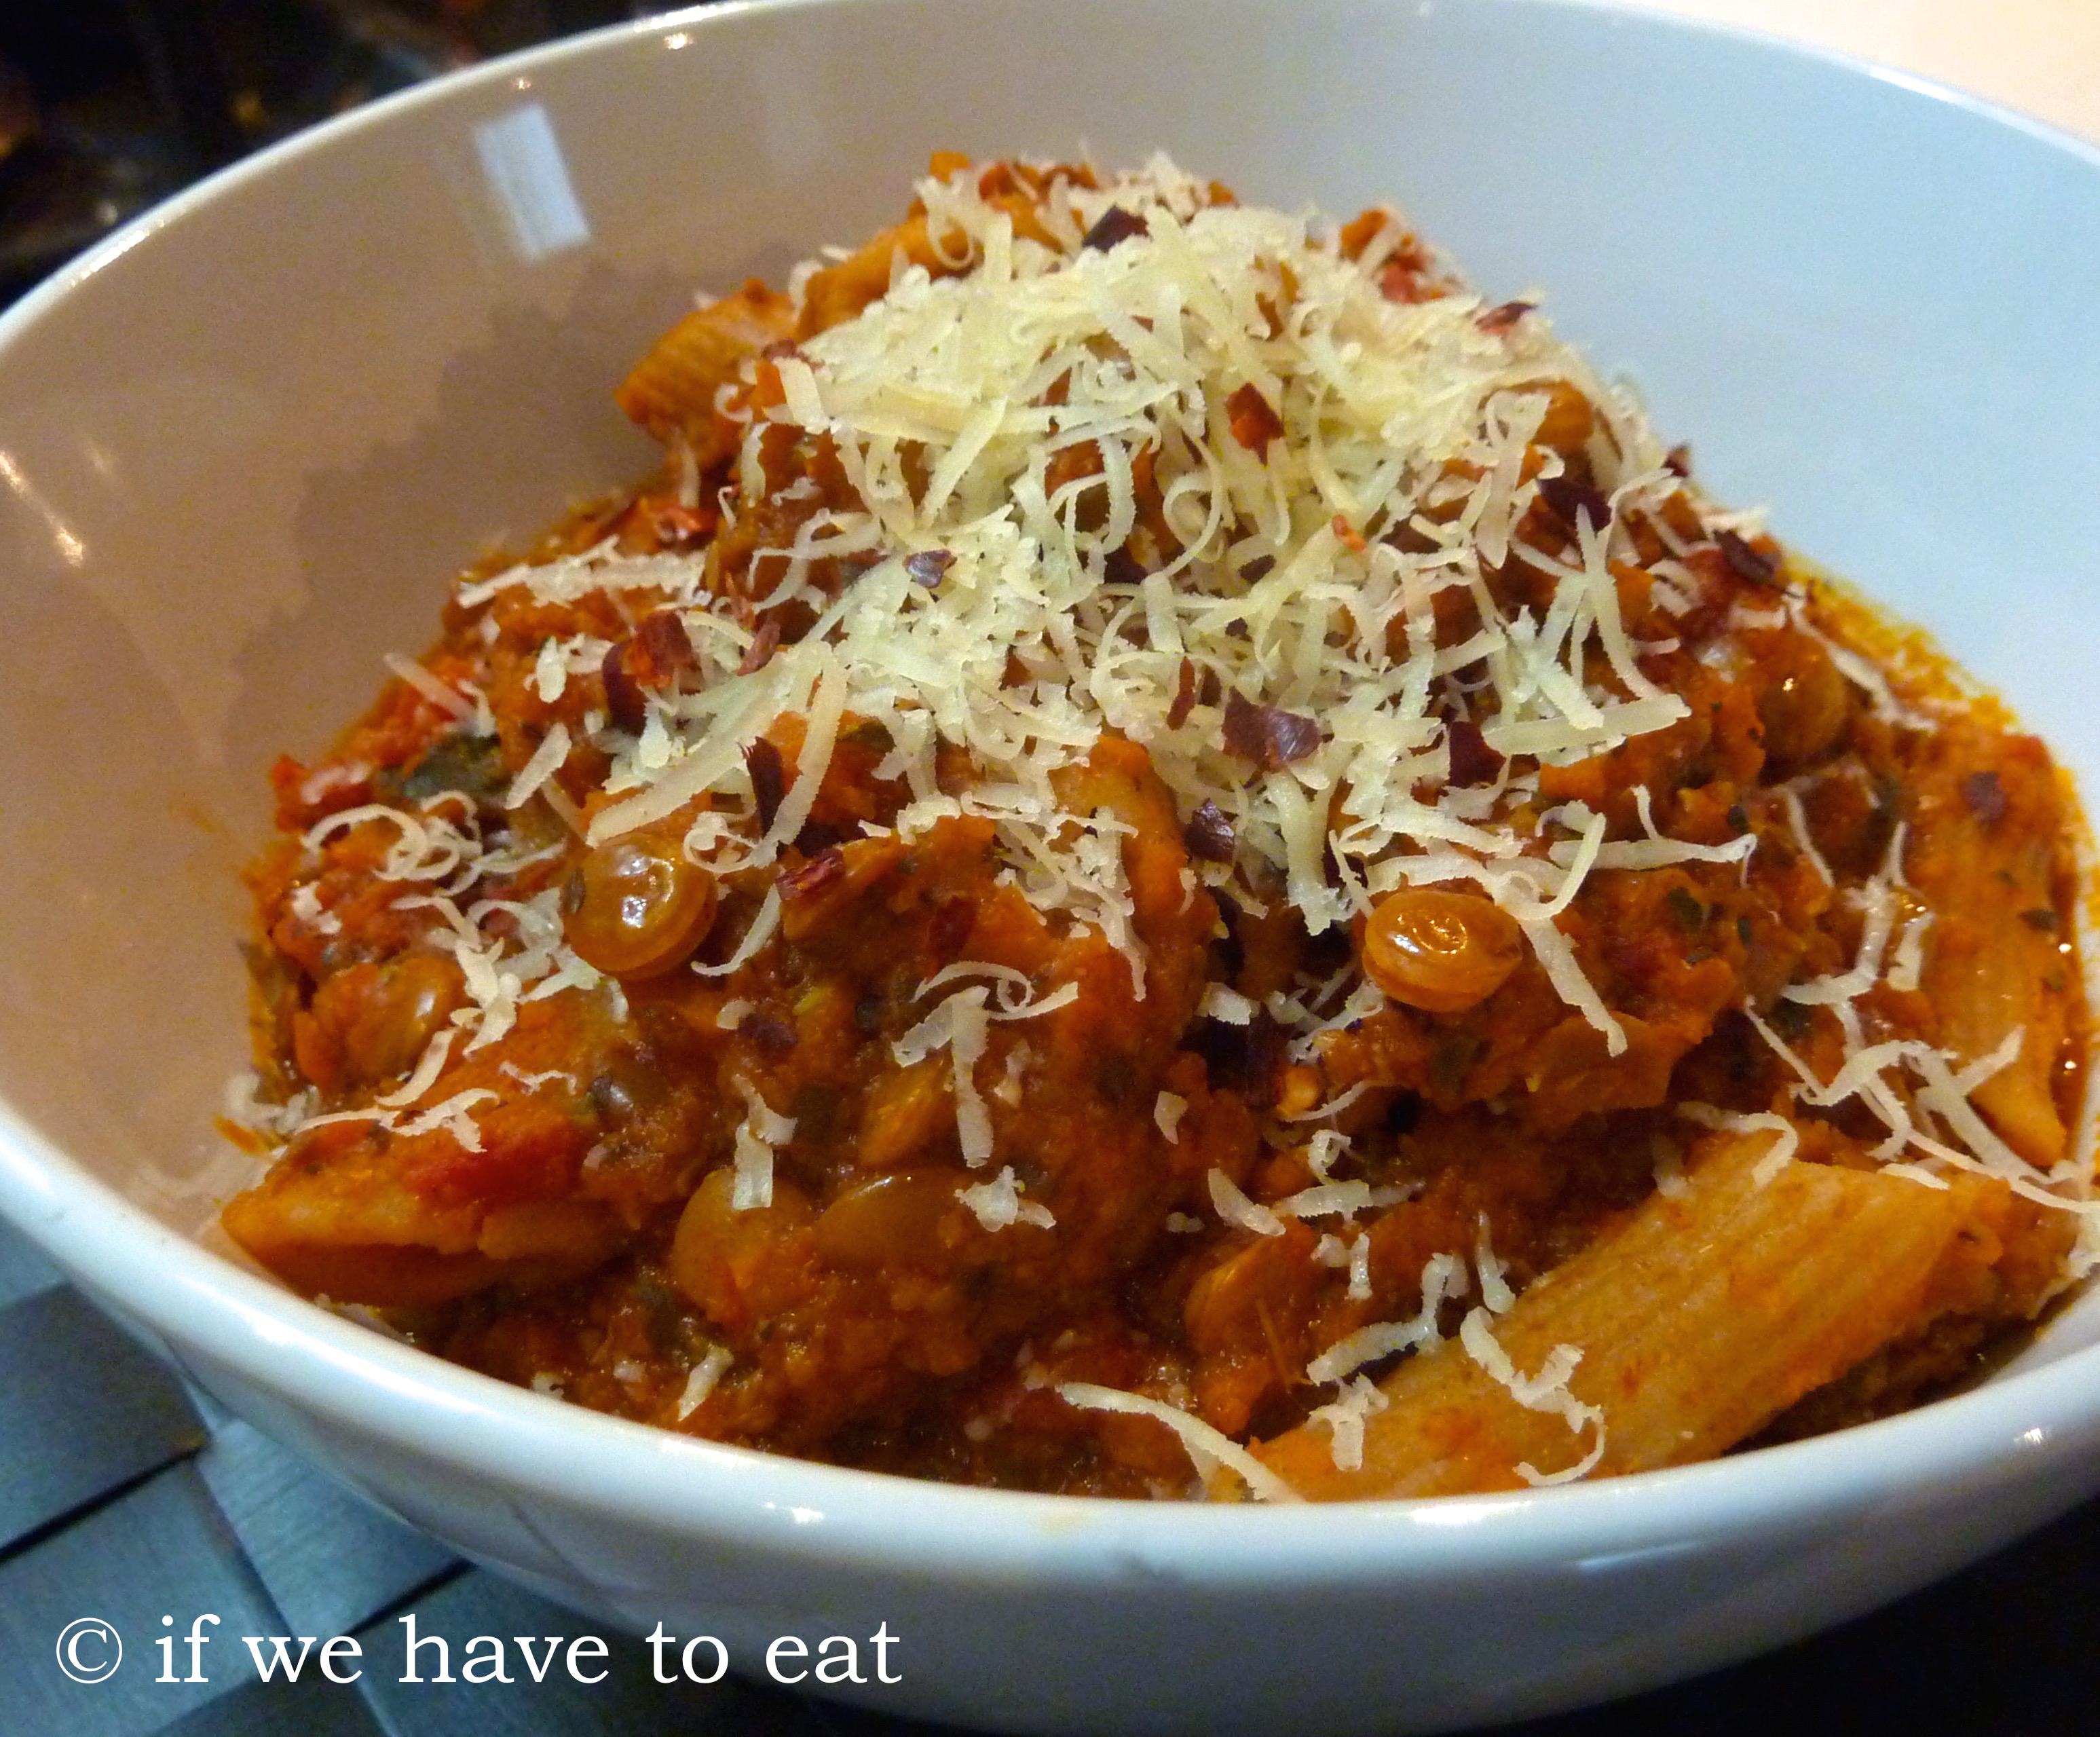 Thermomix Spaghetti Vegetable Bolognaise If We Have To Eat